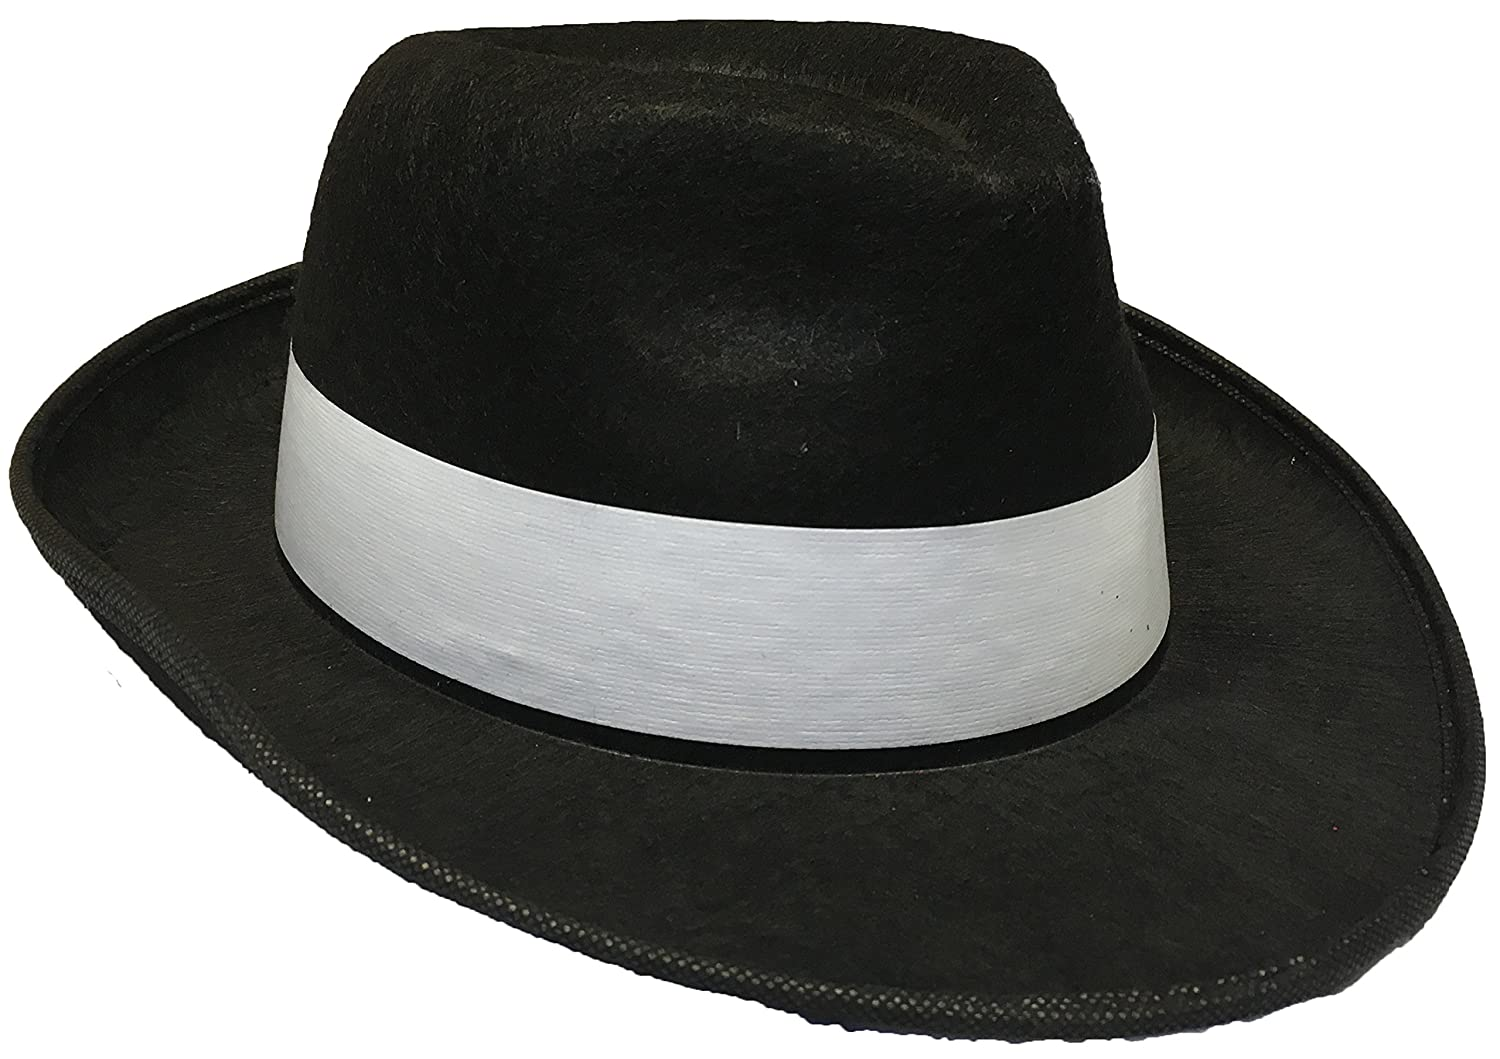 0549b18020f0b Adults Gangster Hat Black with White Band Mafia Fancy Dress Costume  Accessory  Amazon.co.uk  Toys   Games